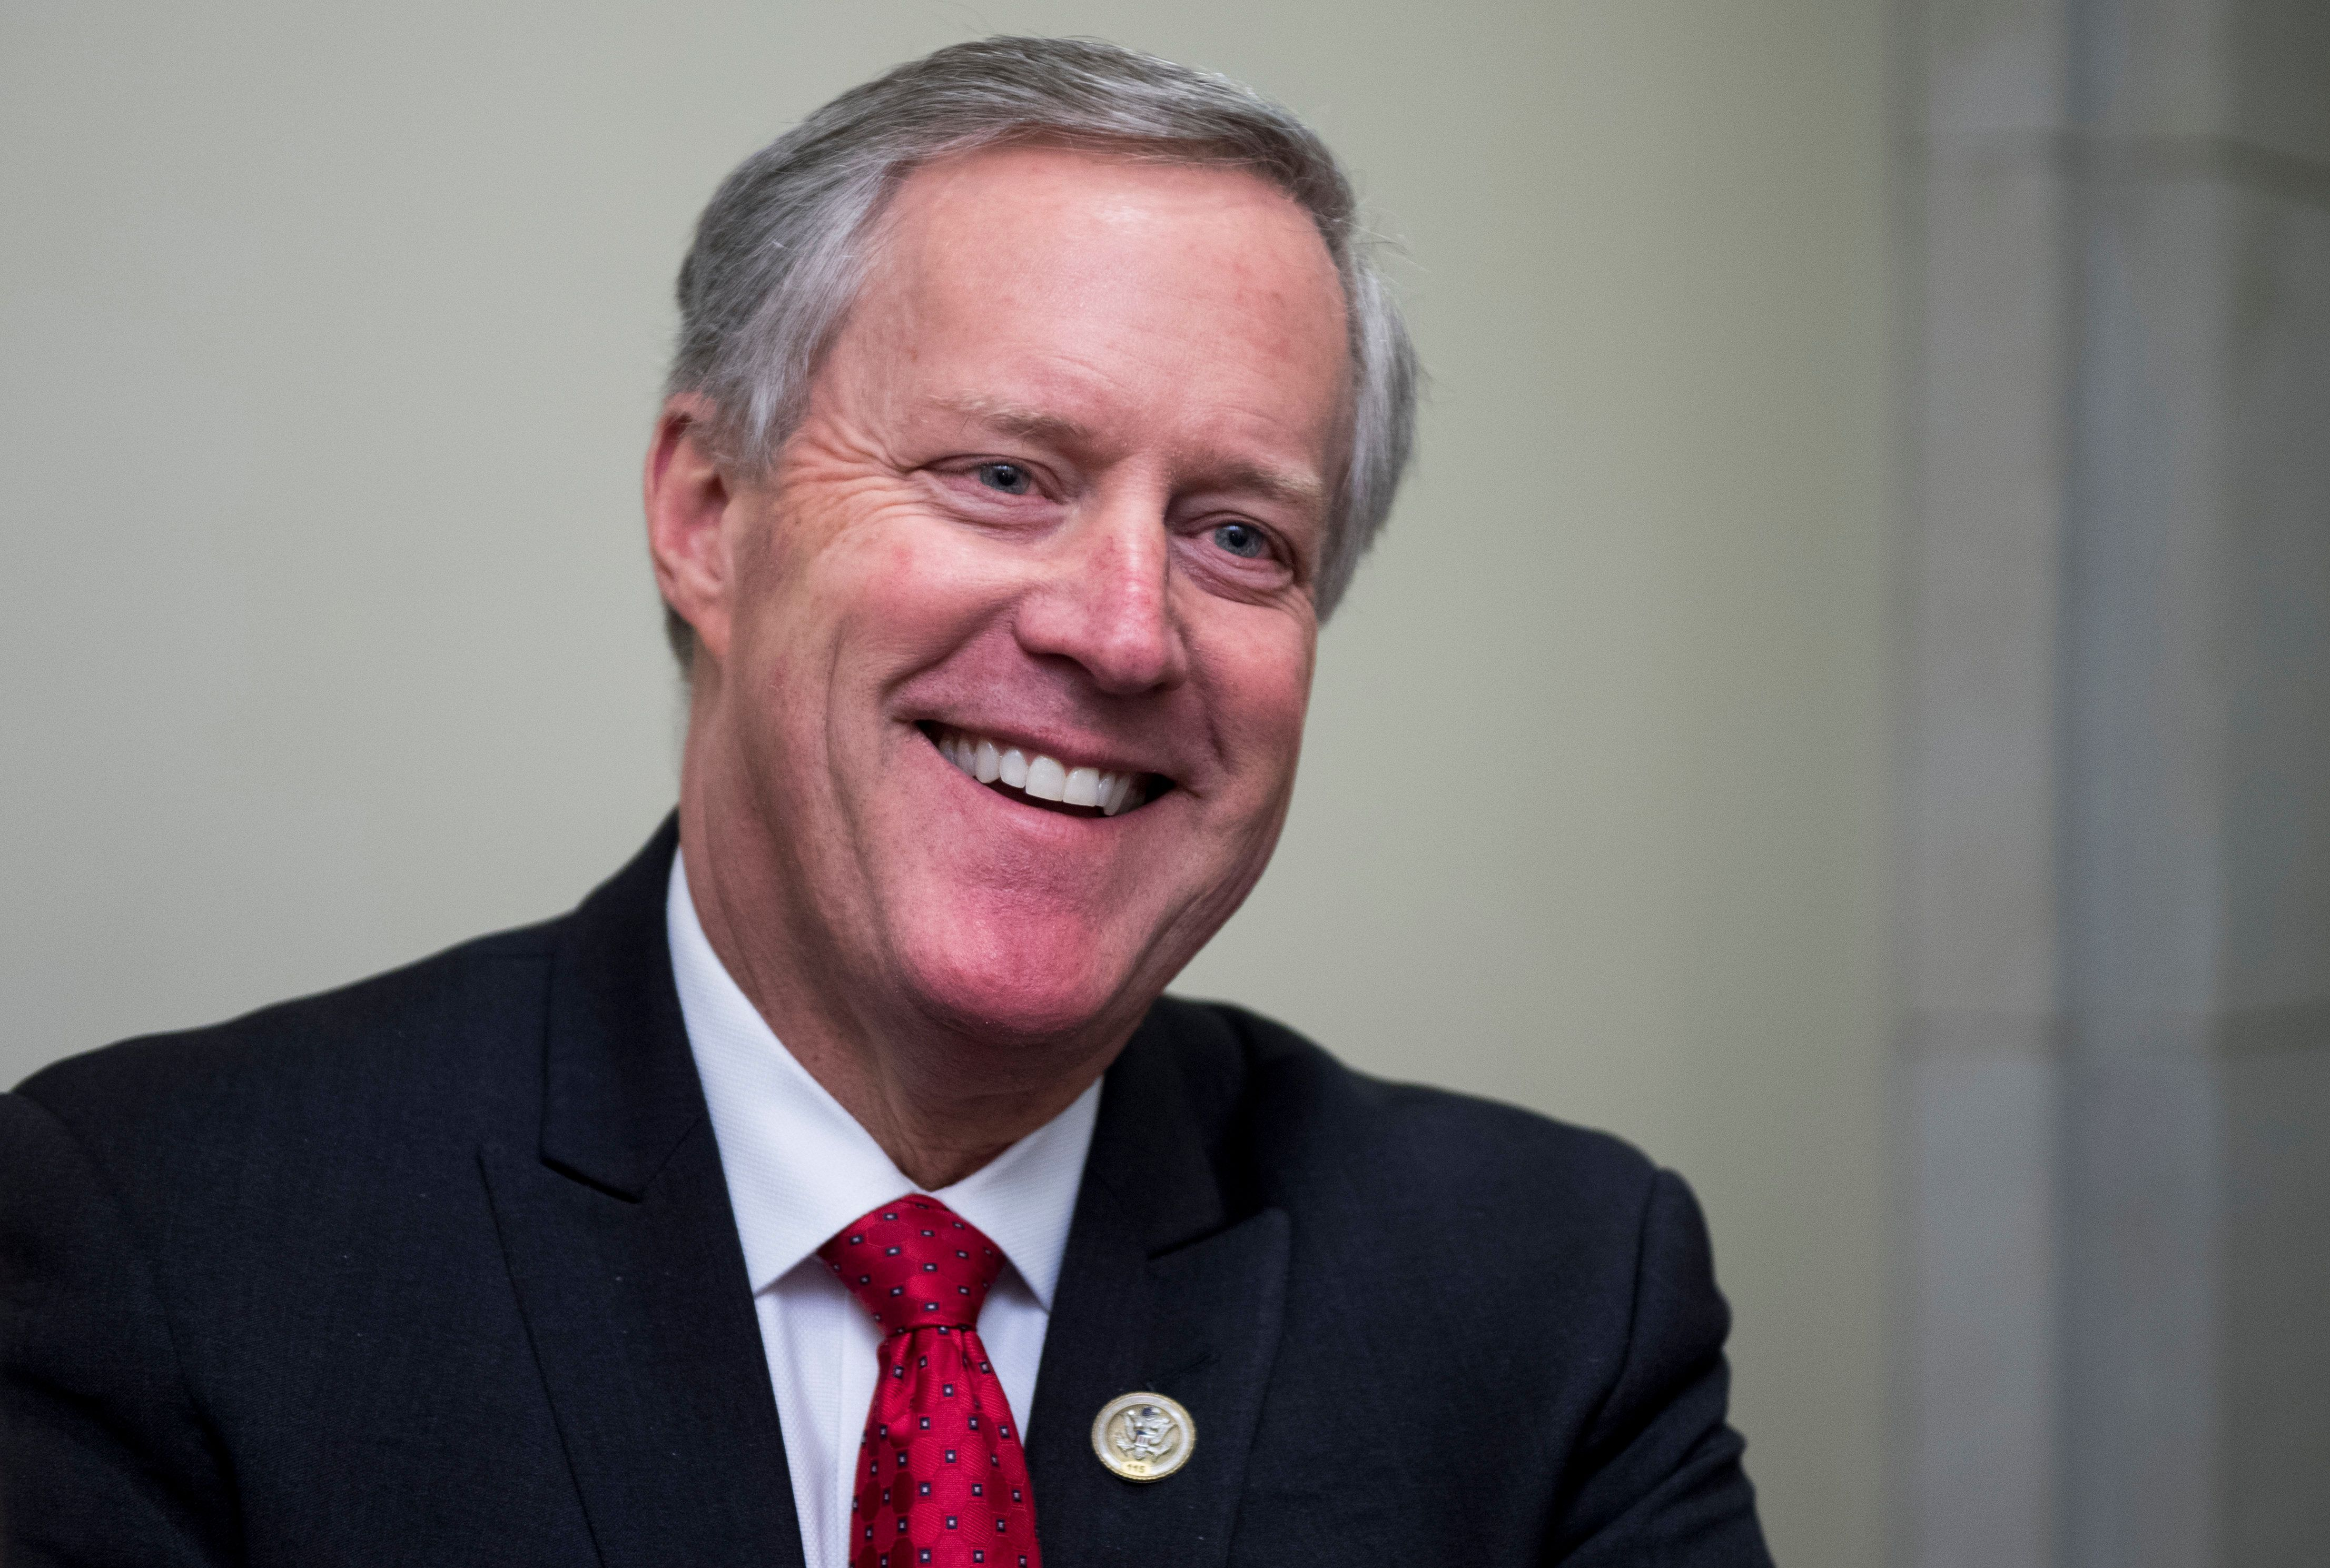 UNITED STATES - JANUARY 18: Rep. Mark Meadows, R-N.C., stops to speak with reporters about the continuing resolution as he walks through the Capitol Visitor Center on Thursday, Jan. 18, 2018(Photo By Bill Clark/CQ Roll Call)